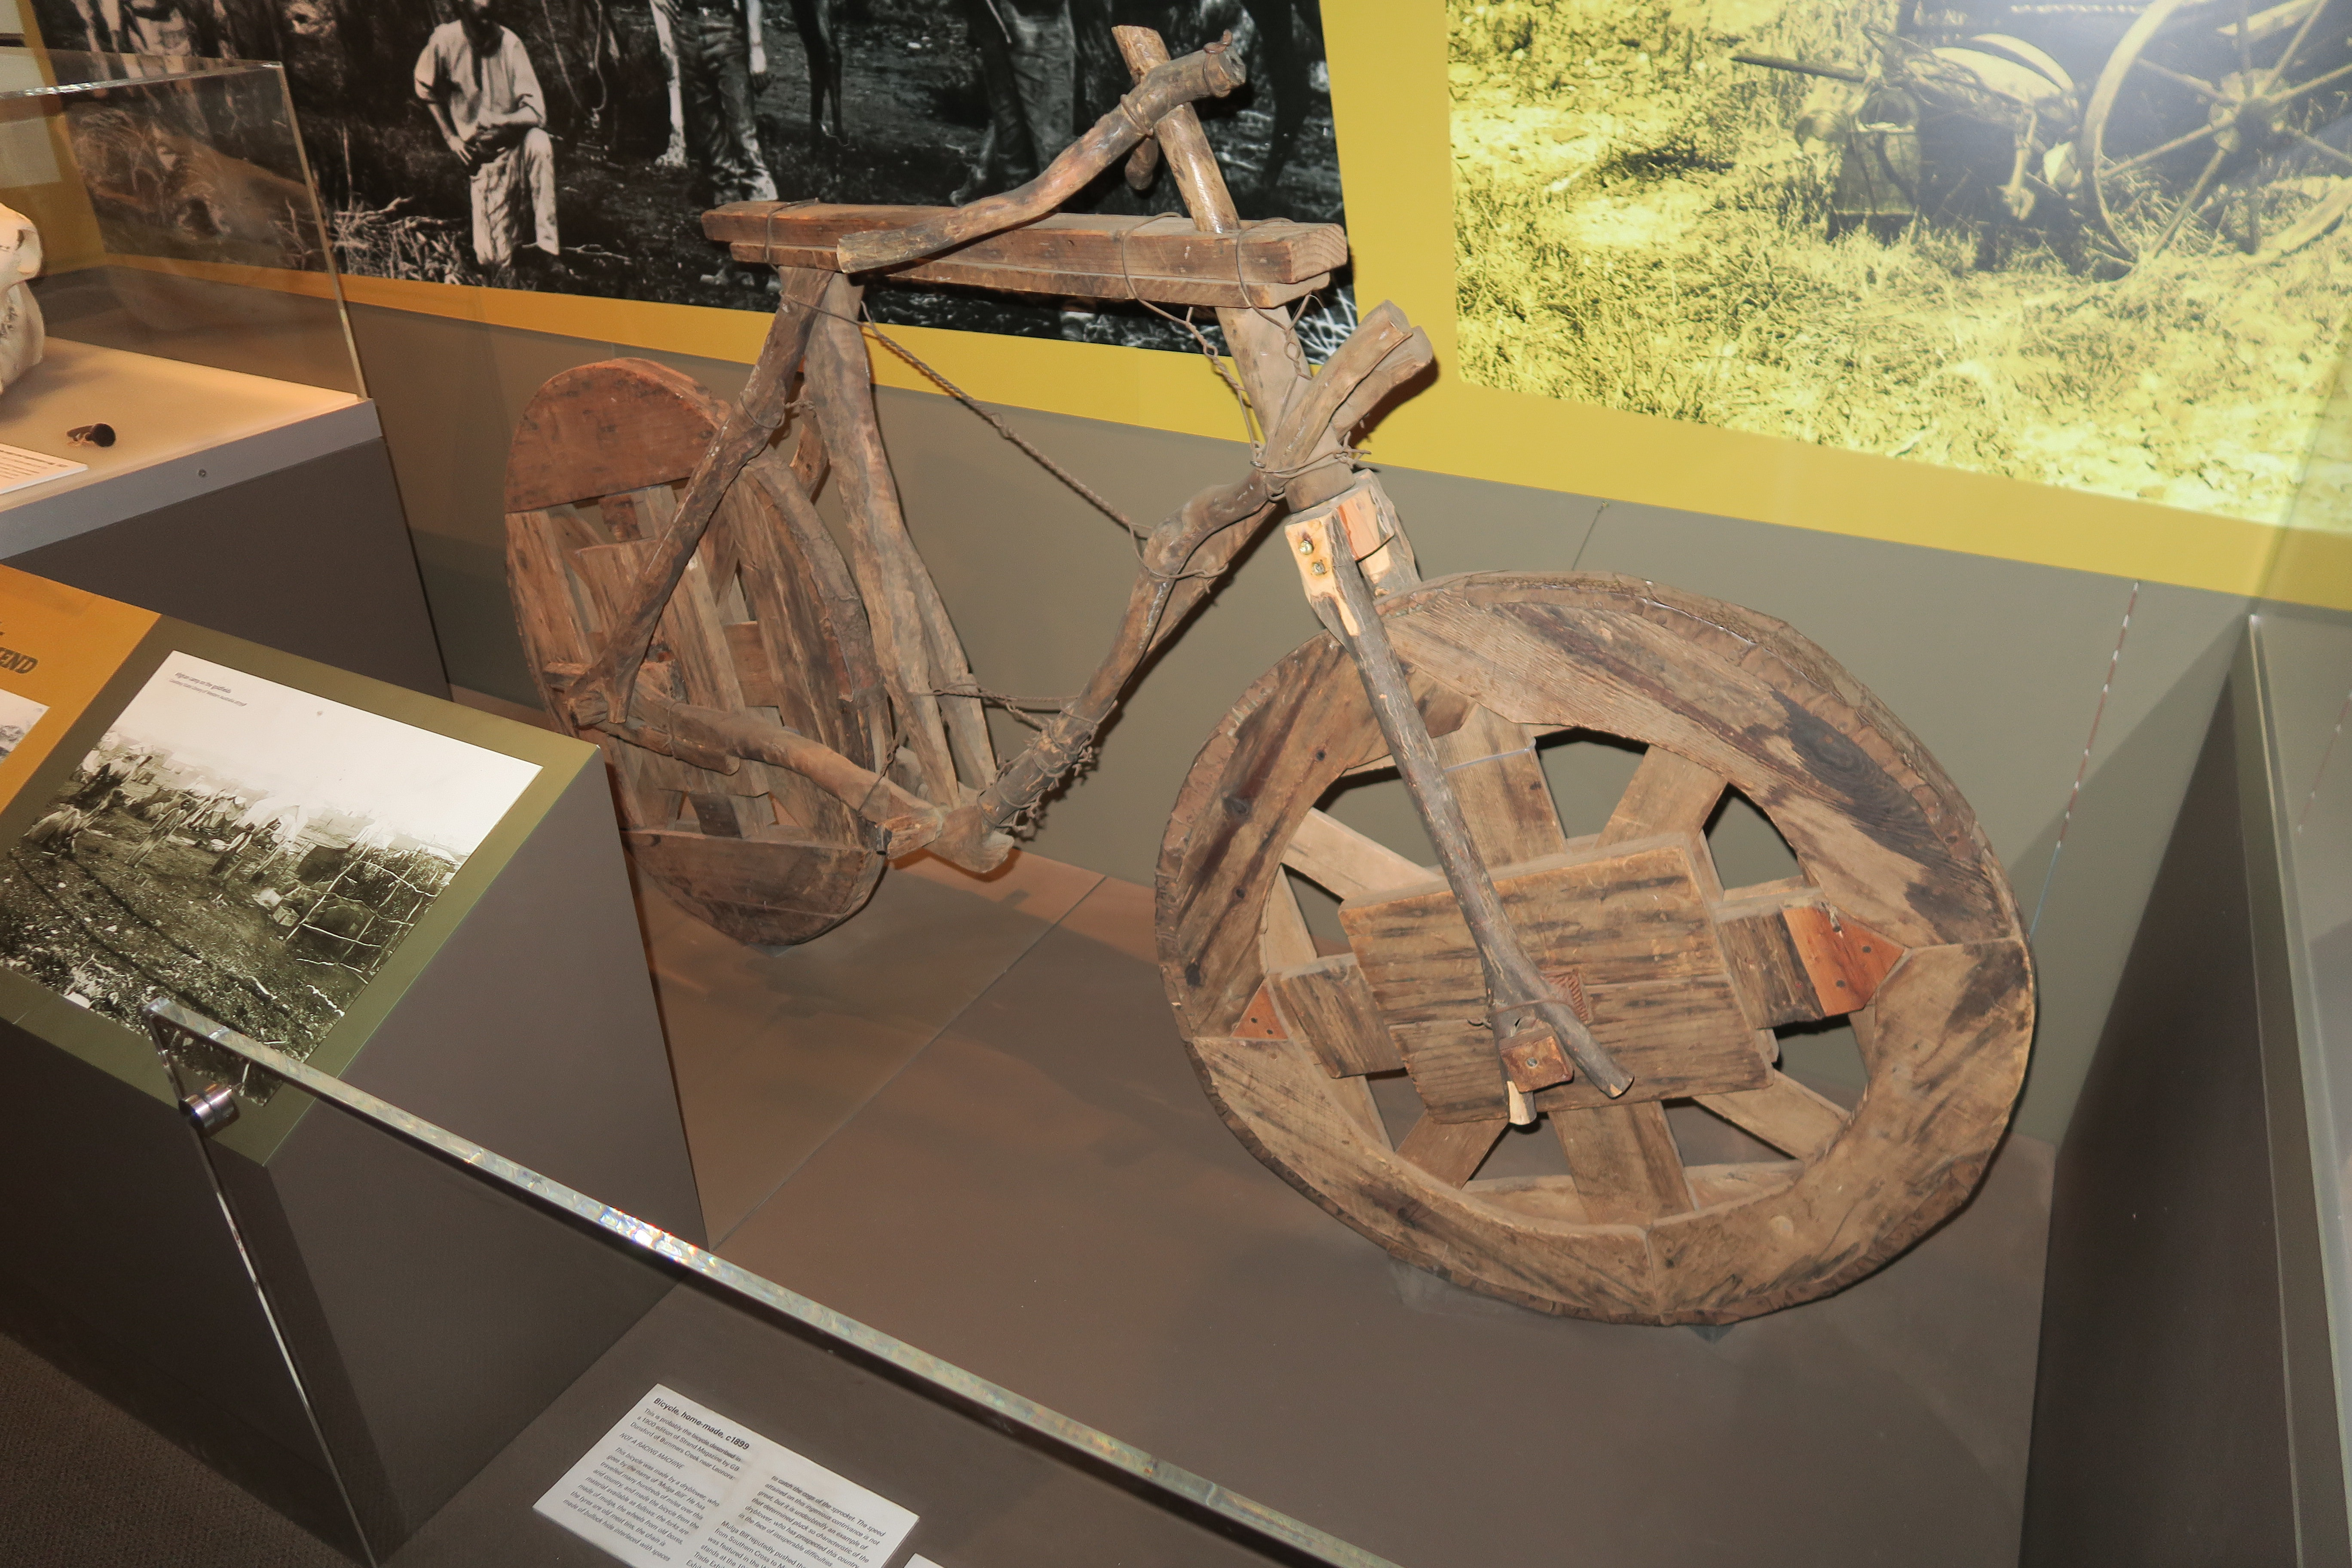 Home made bicycle from 1899, Kalgoorlie Museum